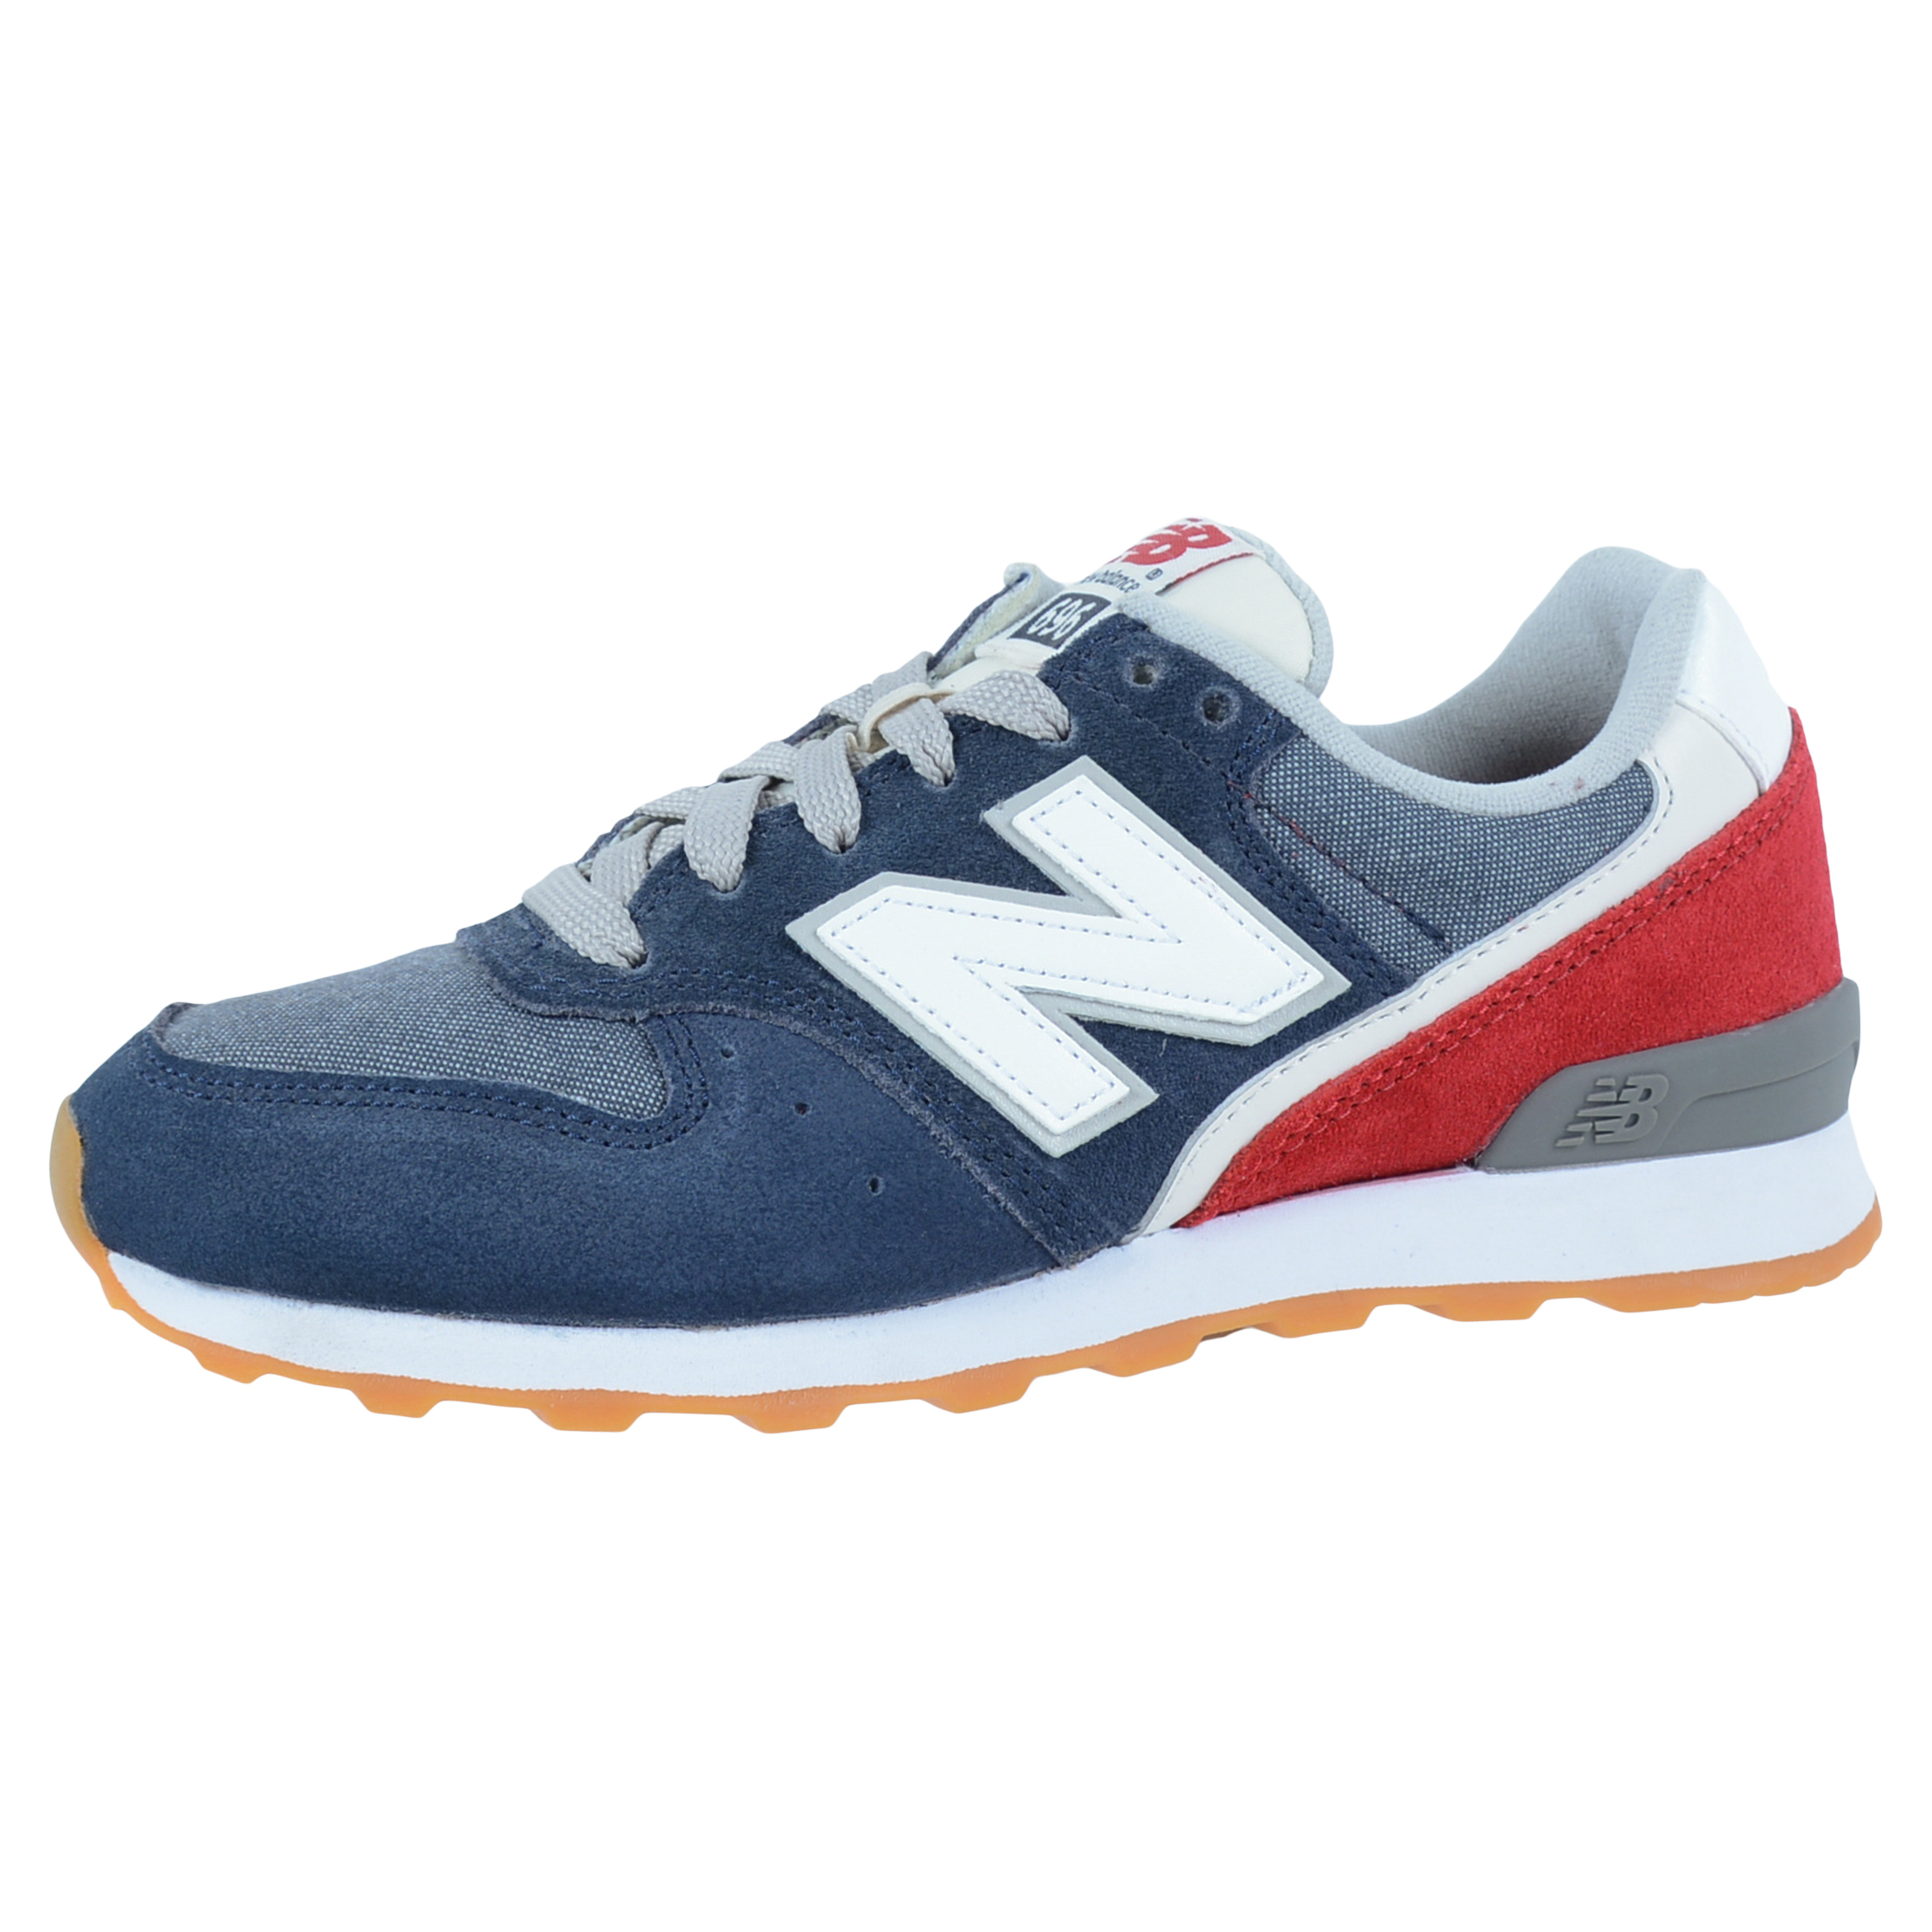 NEW BALANCE WOMEN\u0027S 696 CASUAL RUNNING SHOES NAVY RED WHITE WL696IRS